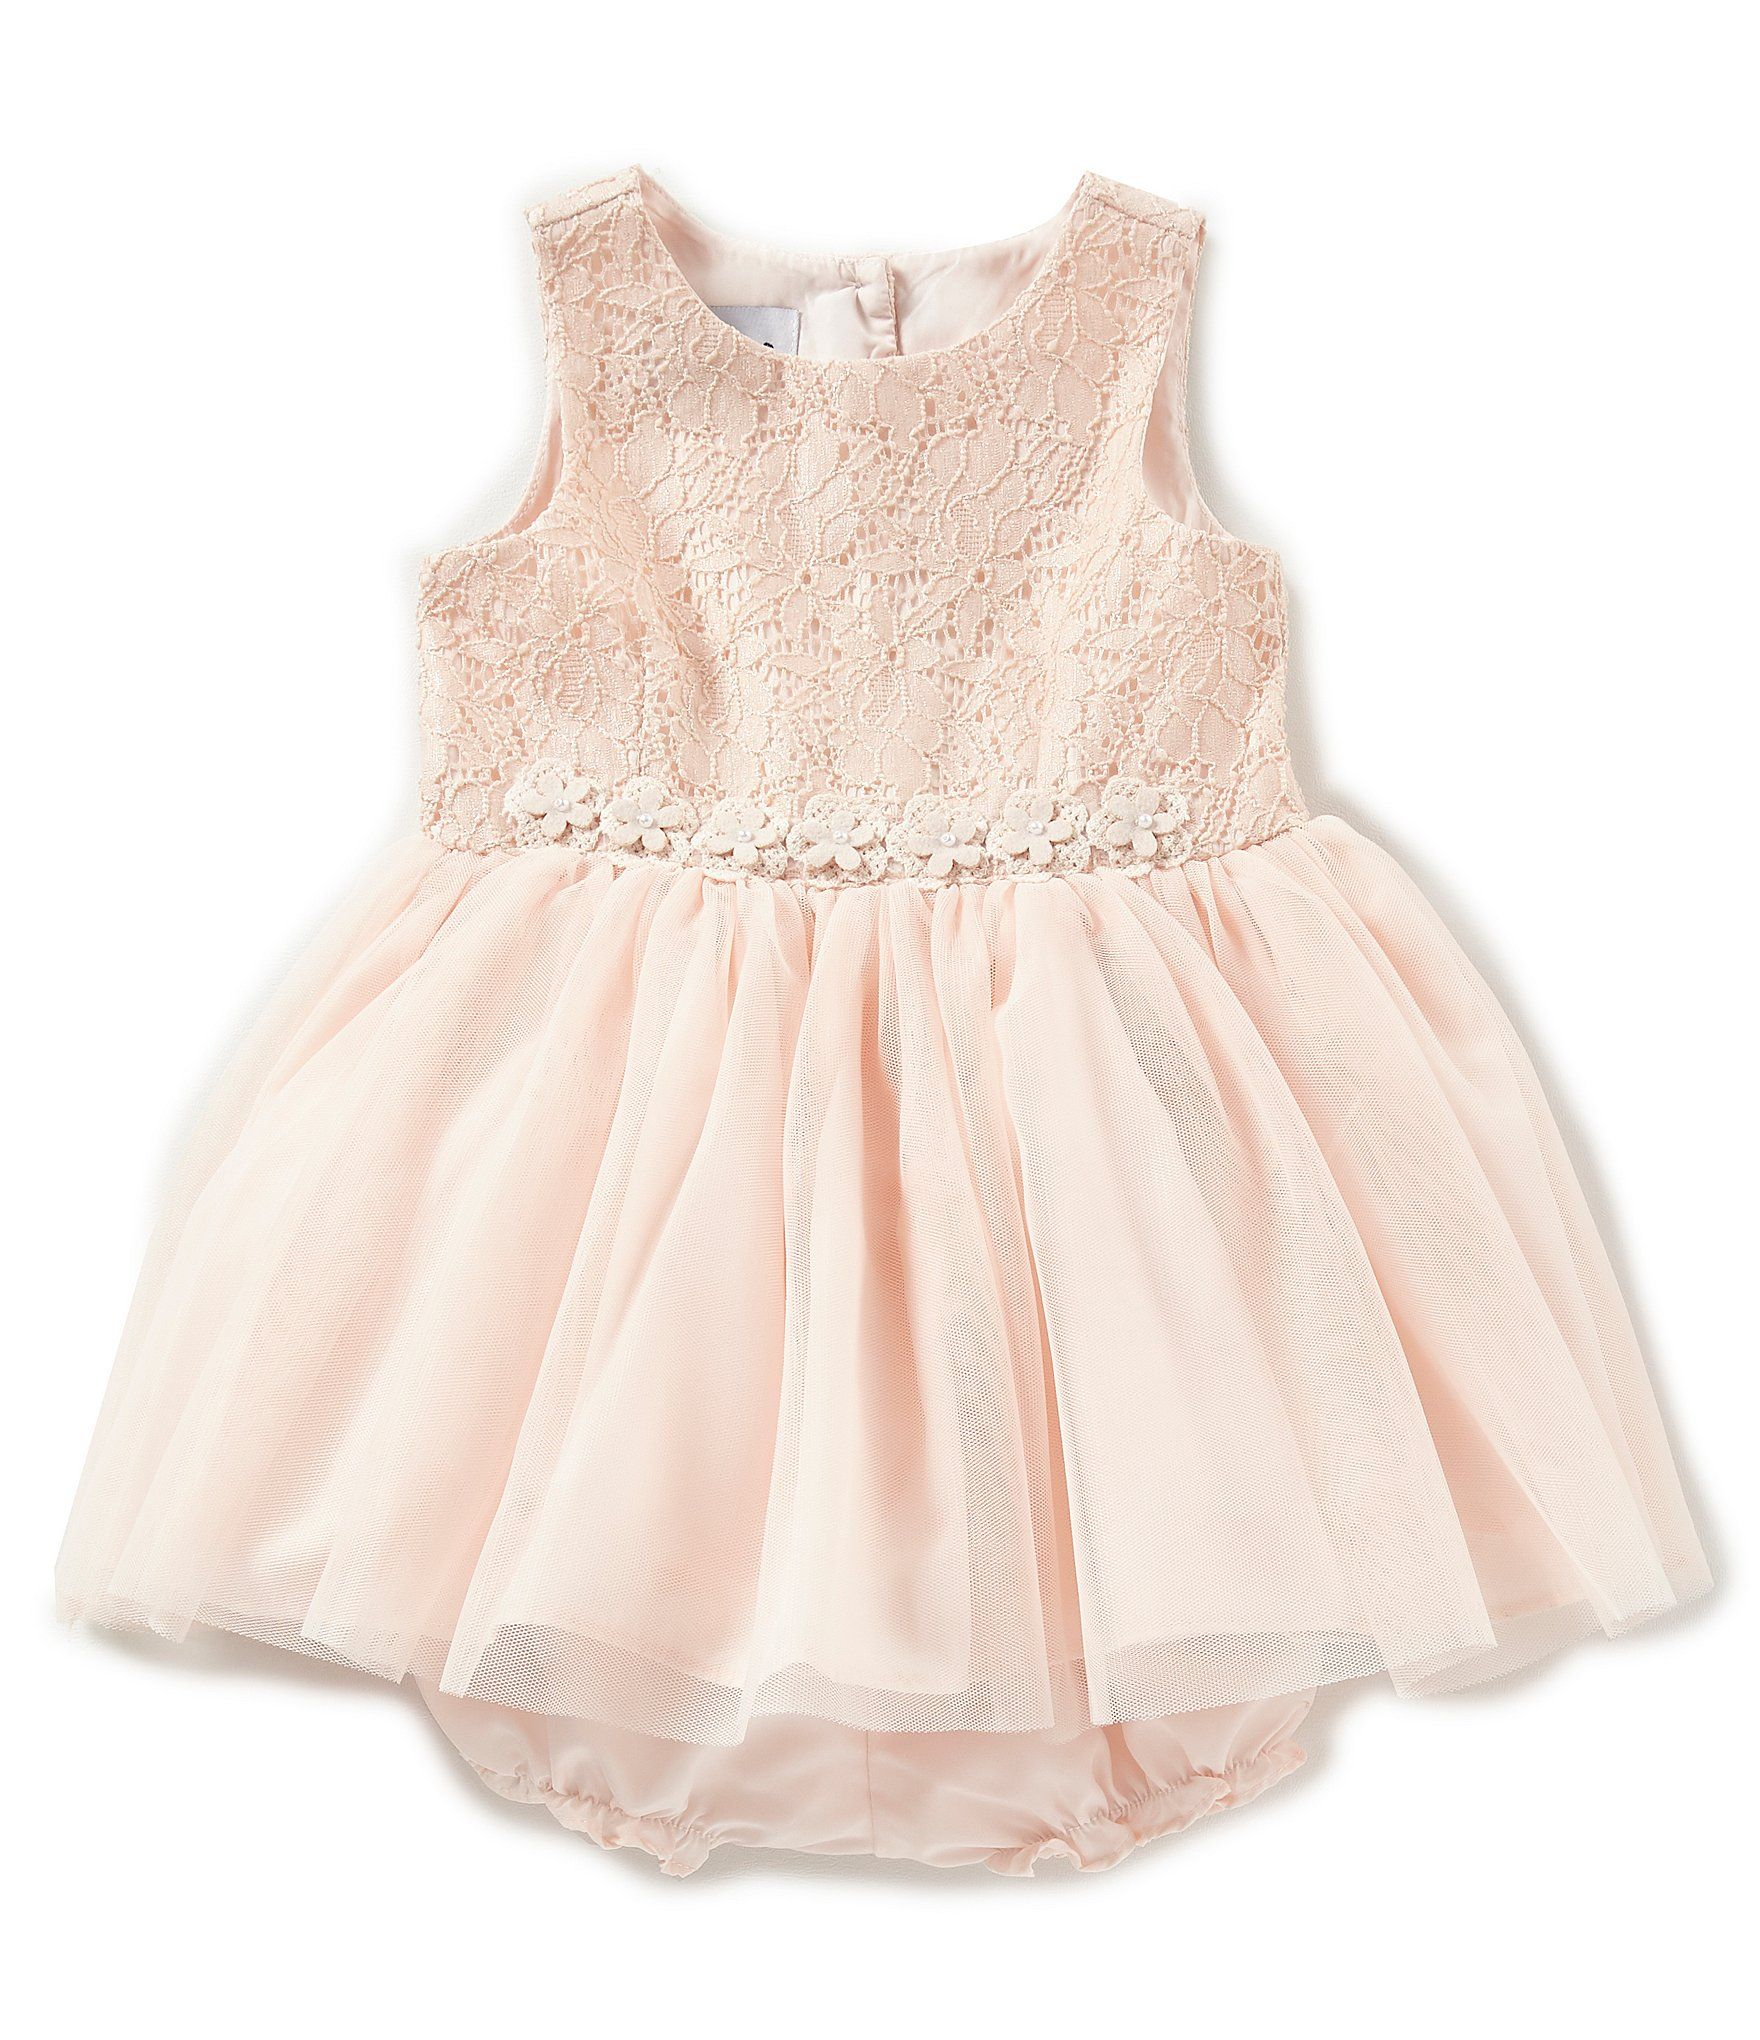 a806a9b0bc7 Pippa   Julie Baby Girls 12-24 Months Lace Tulle Fit-And-Flare Dress   Dillards